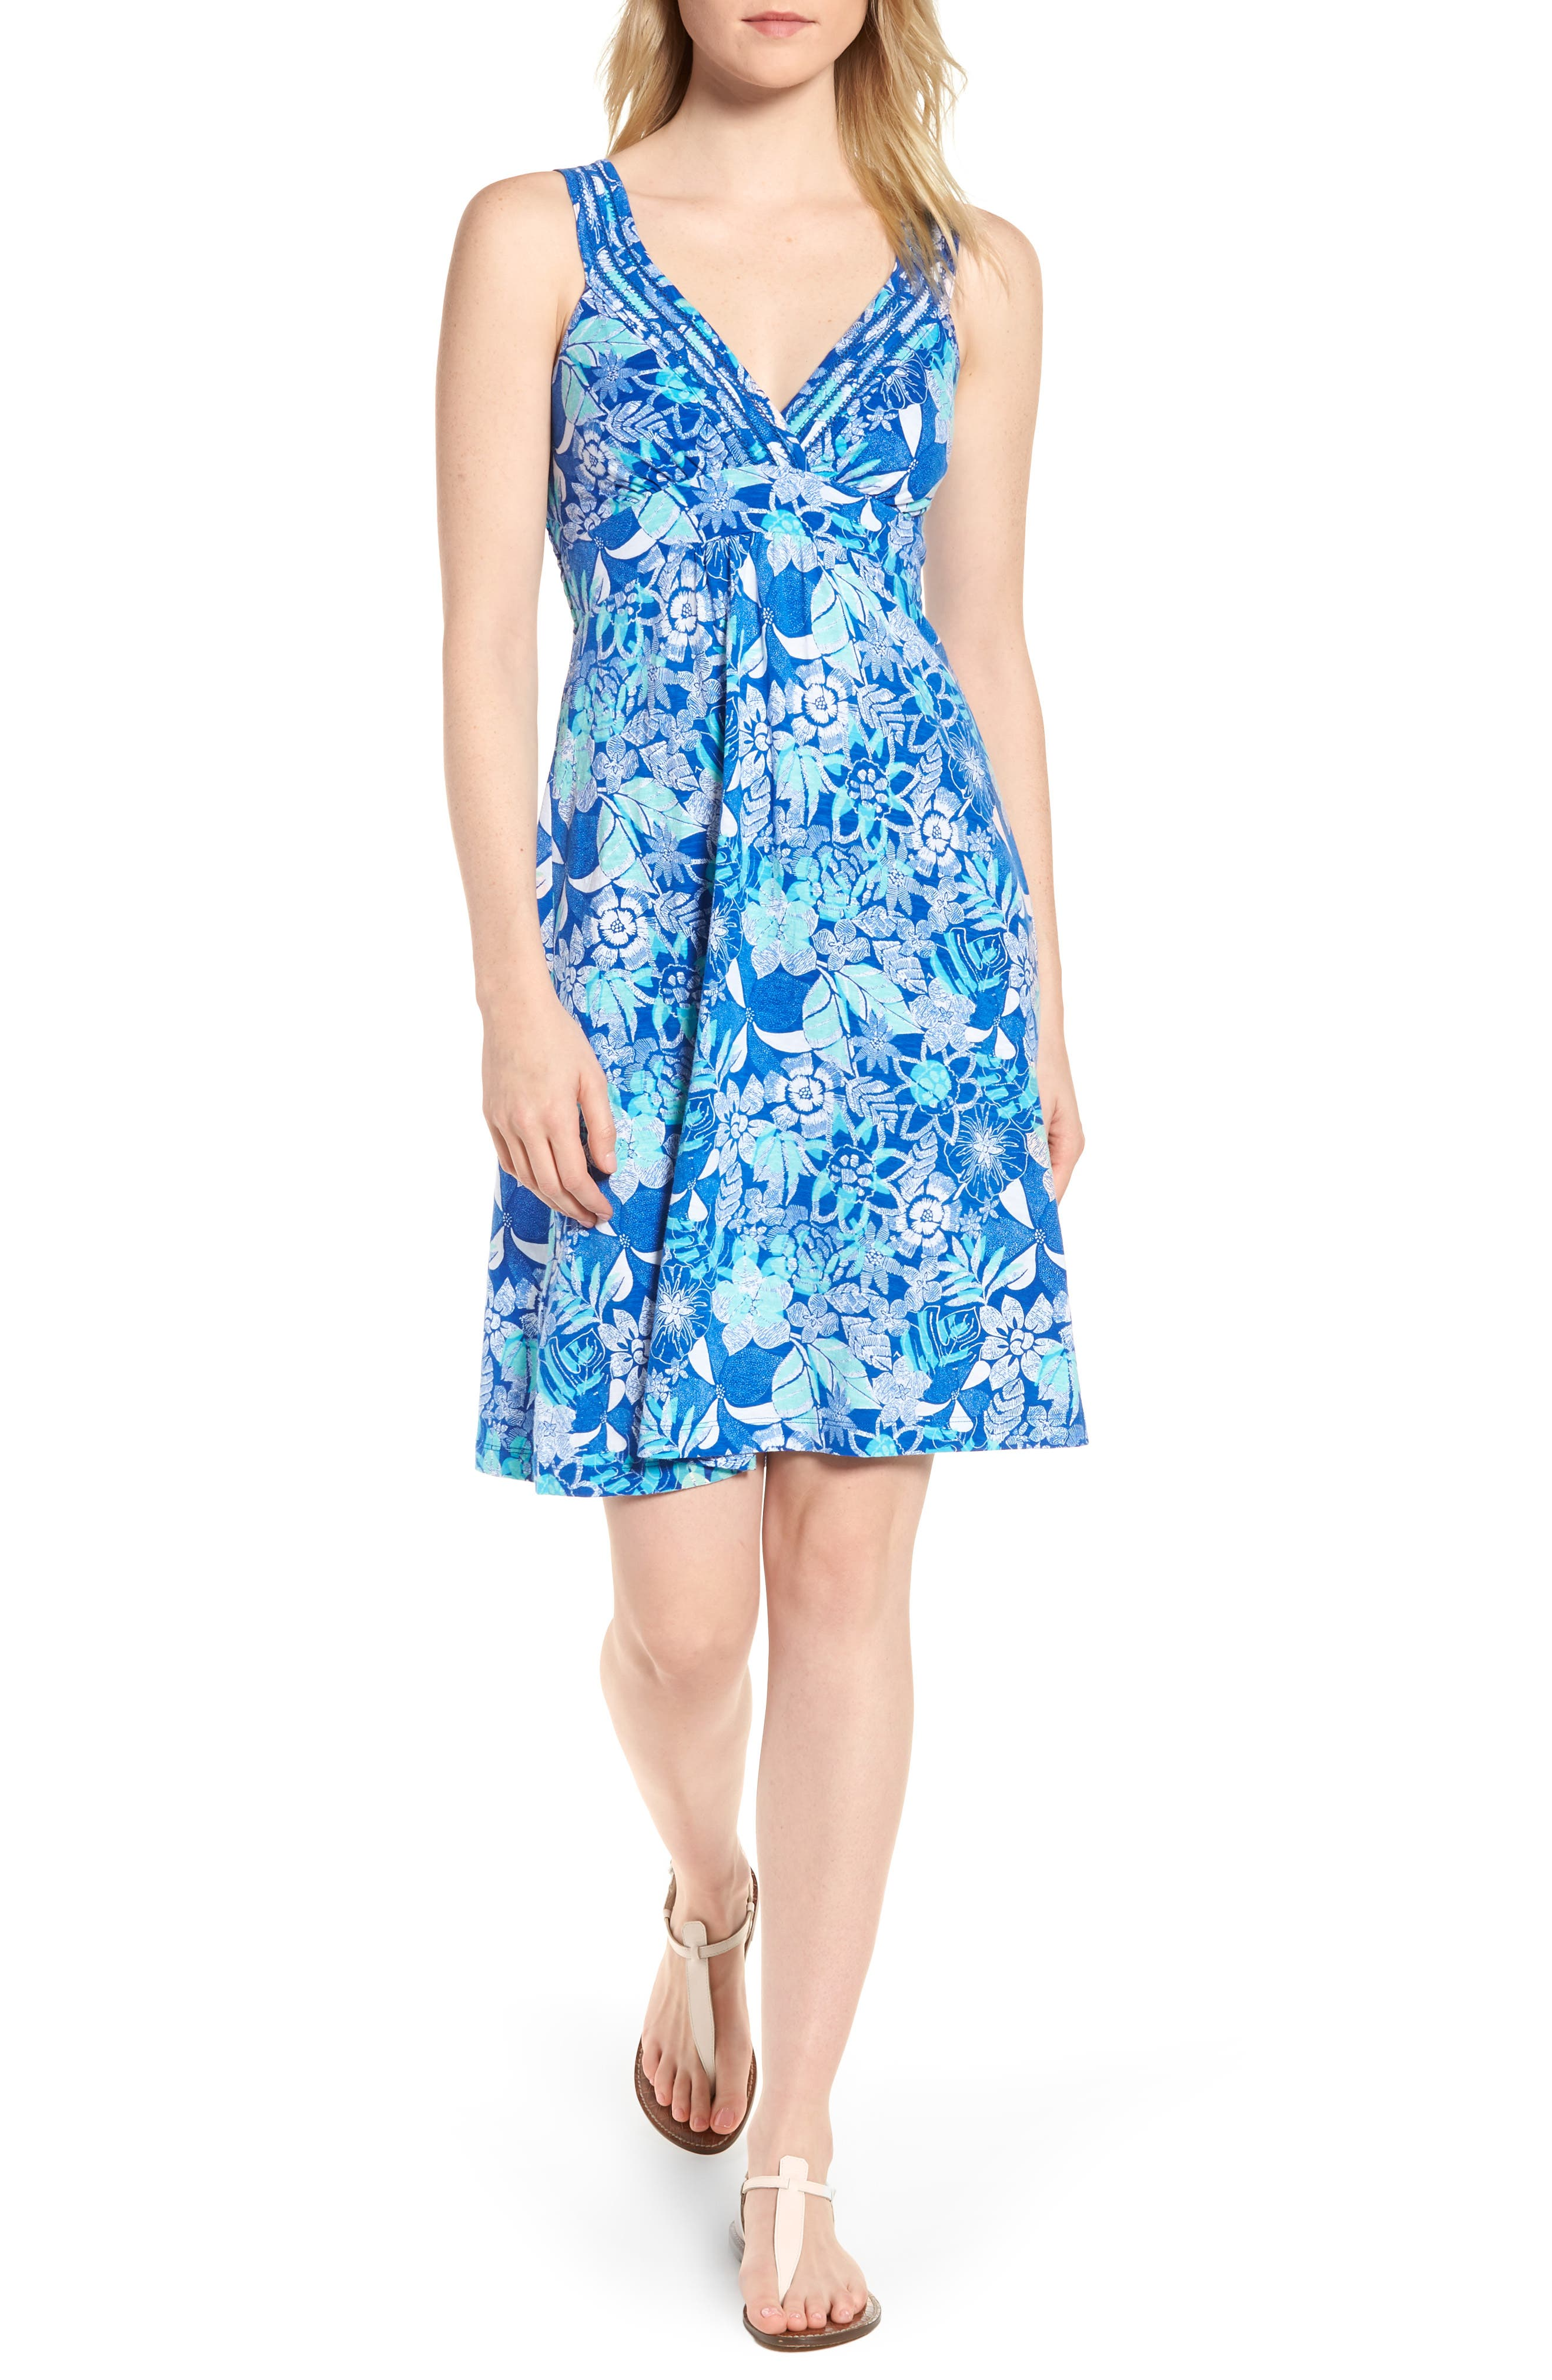 Boardwalk Blooms A-Line Dress,                         Main,                         color, COBALT